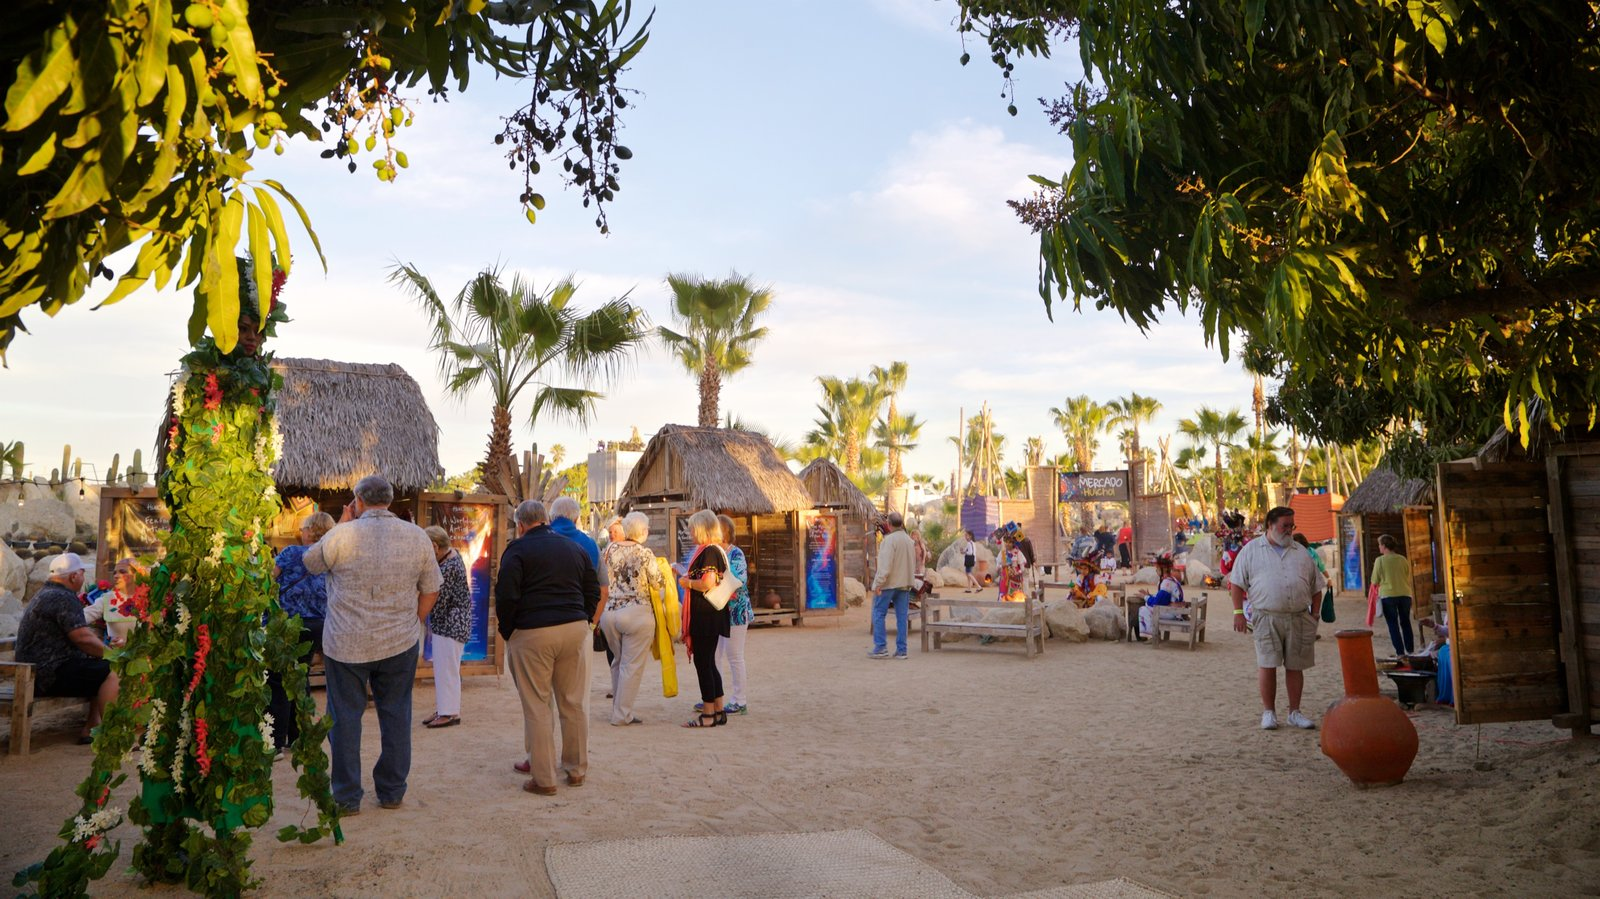 Wirikuta Garden showing a sandy beach, tropical scenes and a small town or village